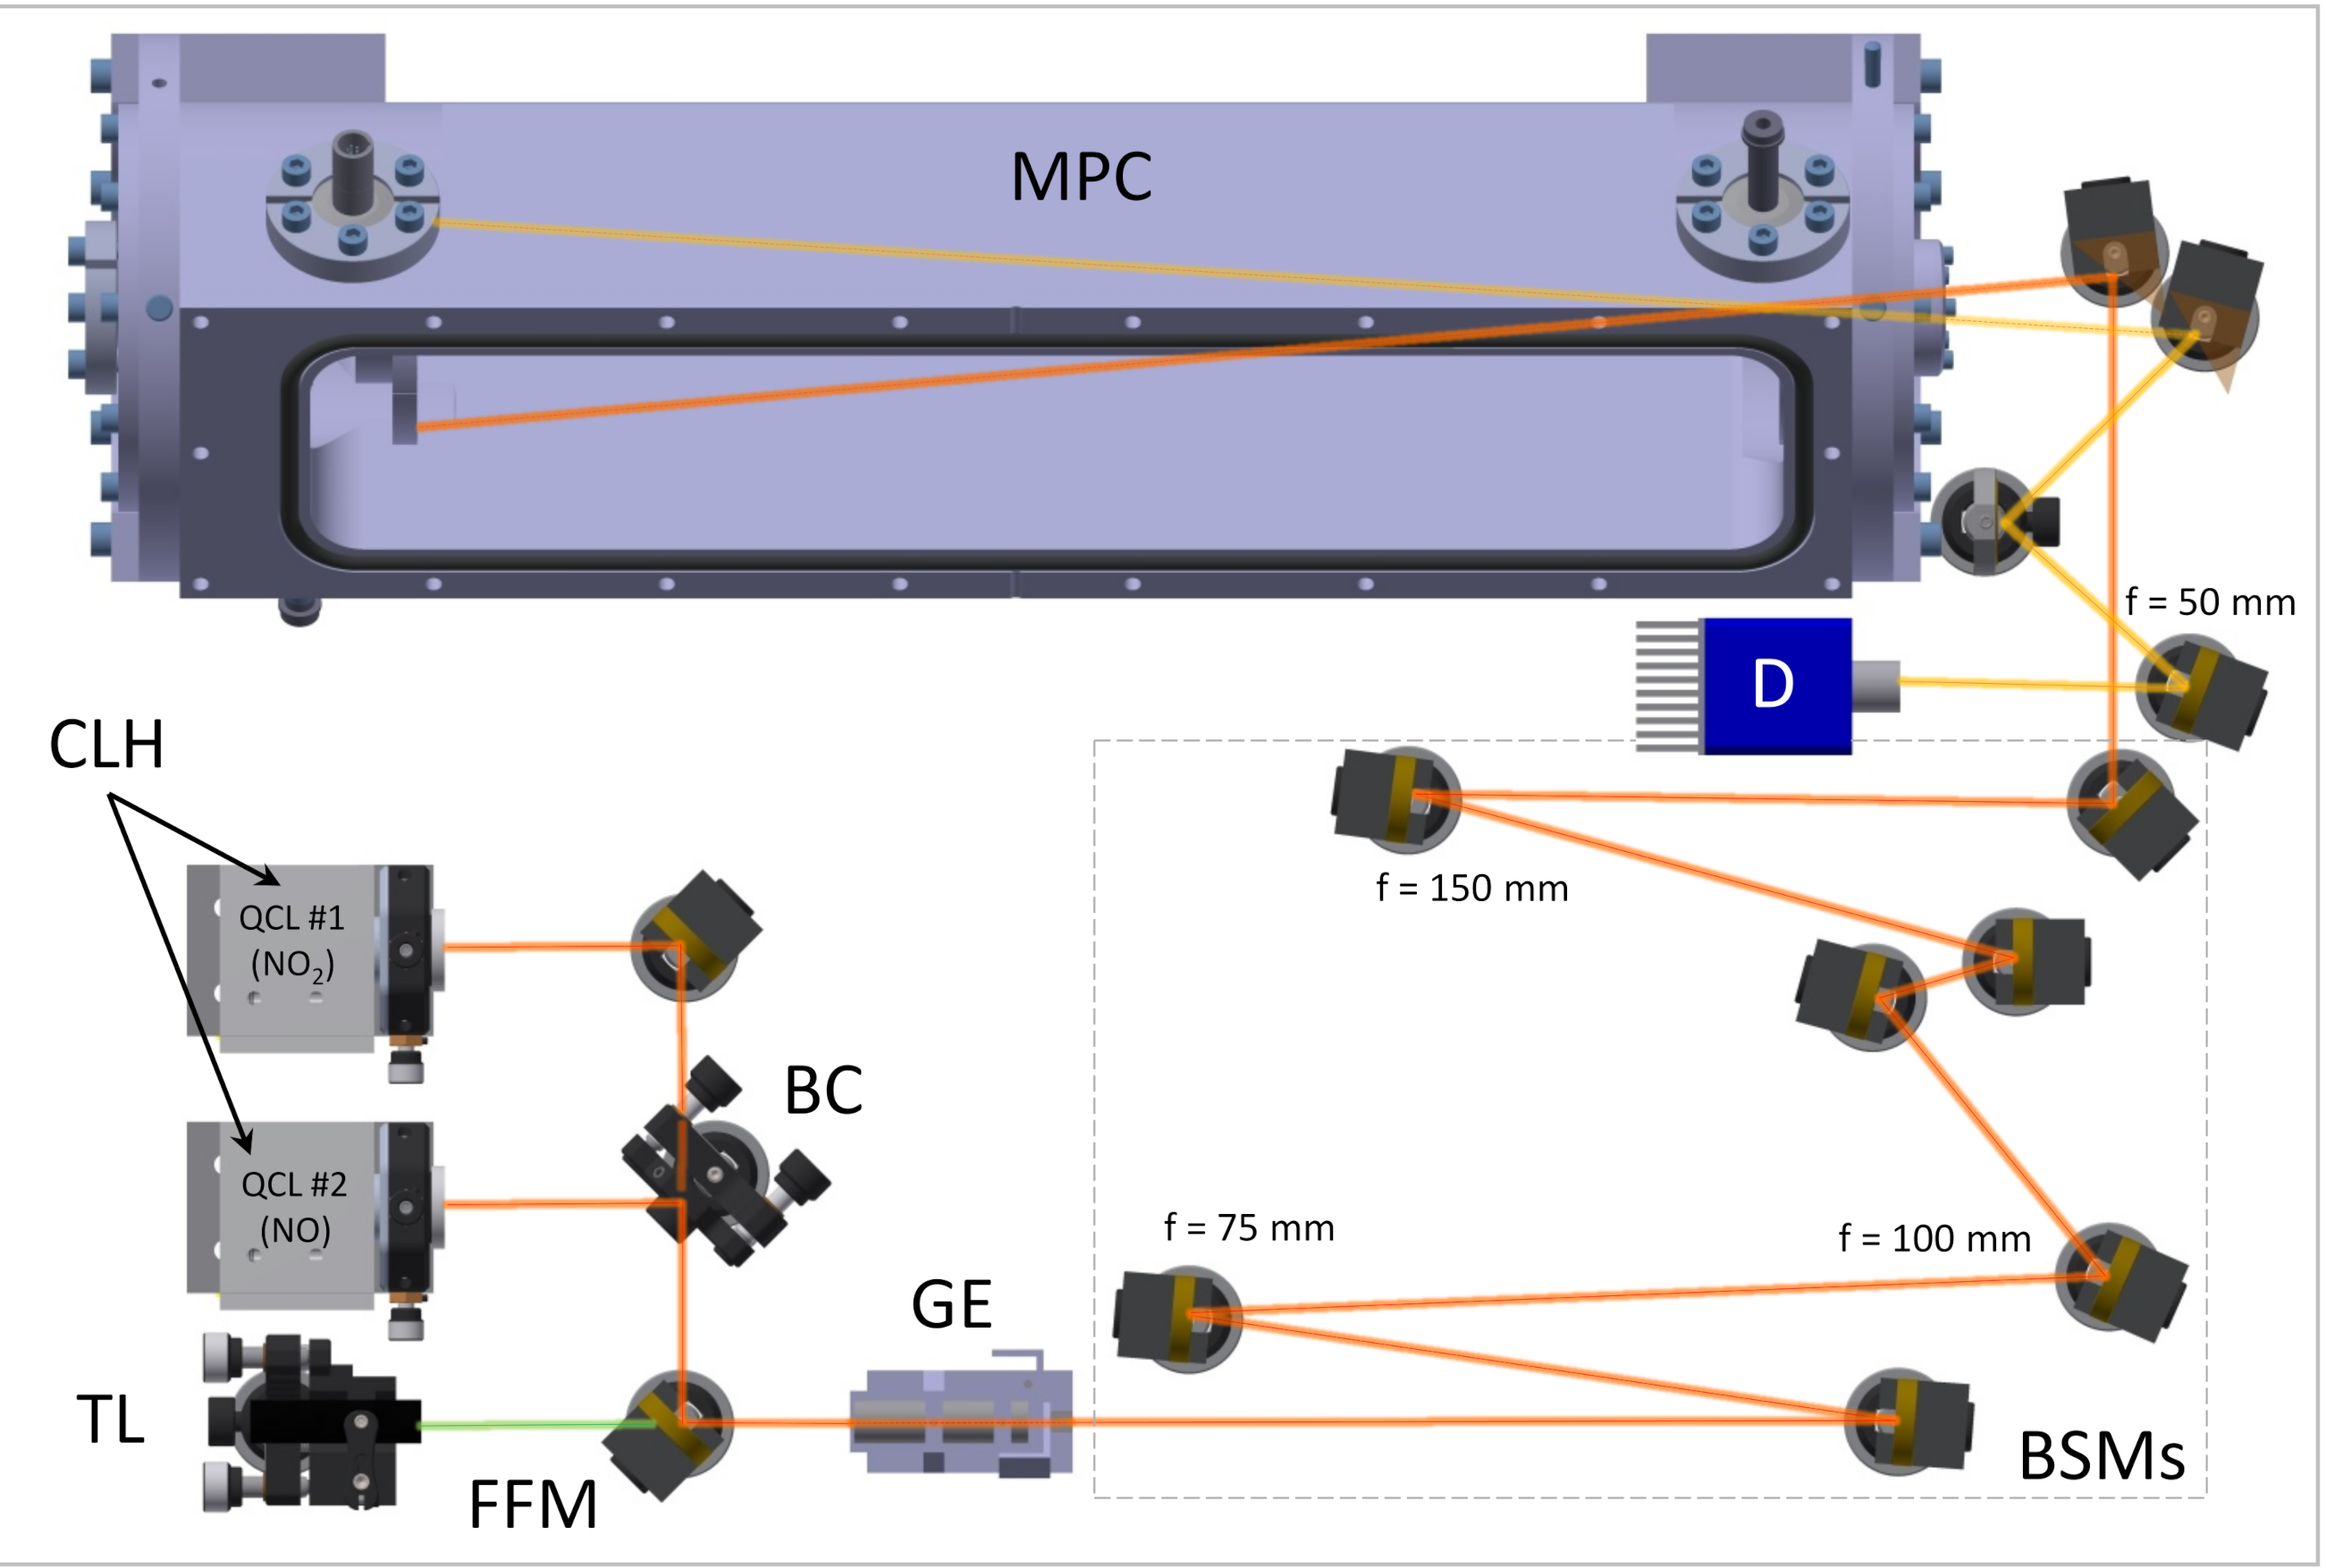 Applied Sciences Free Full Text Advances In High Precision No2 Measurement By Quantum Cascade Laser Absorption Spectroscopy Html